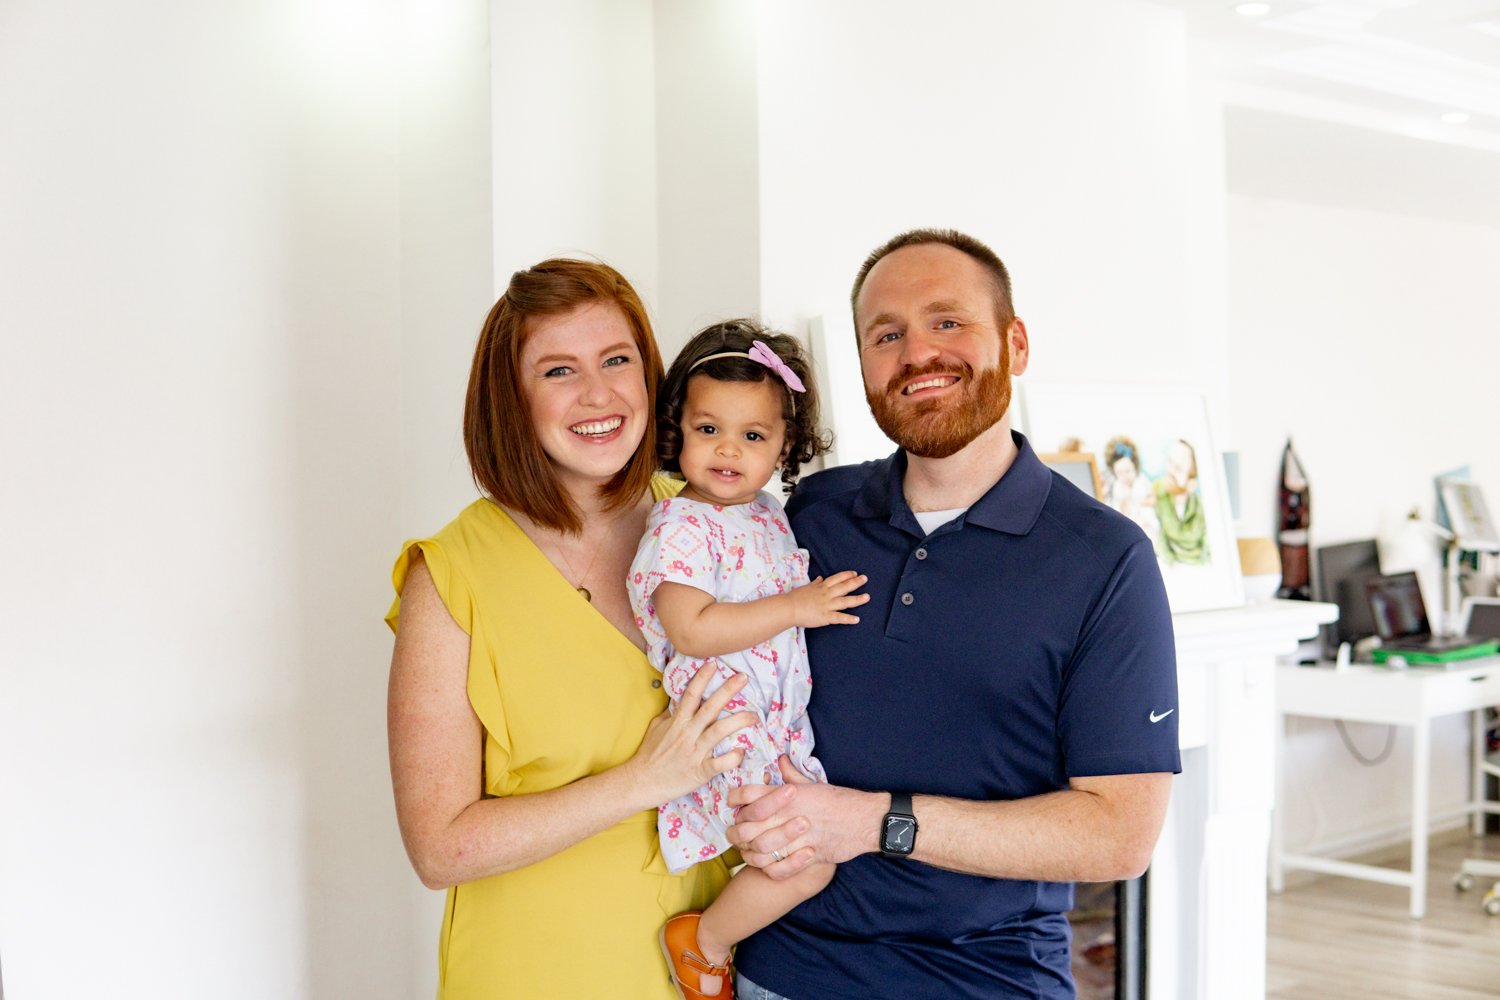 Follow the Funks, an American family of expats living in sunny Izmir, to learn more about their experience as parents in Turkey. (Photo courtesy of Catie Funk)